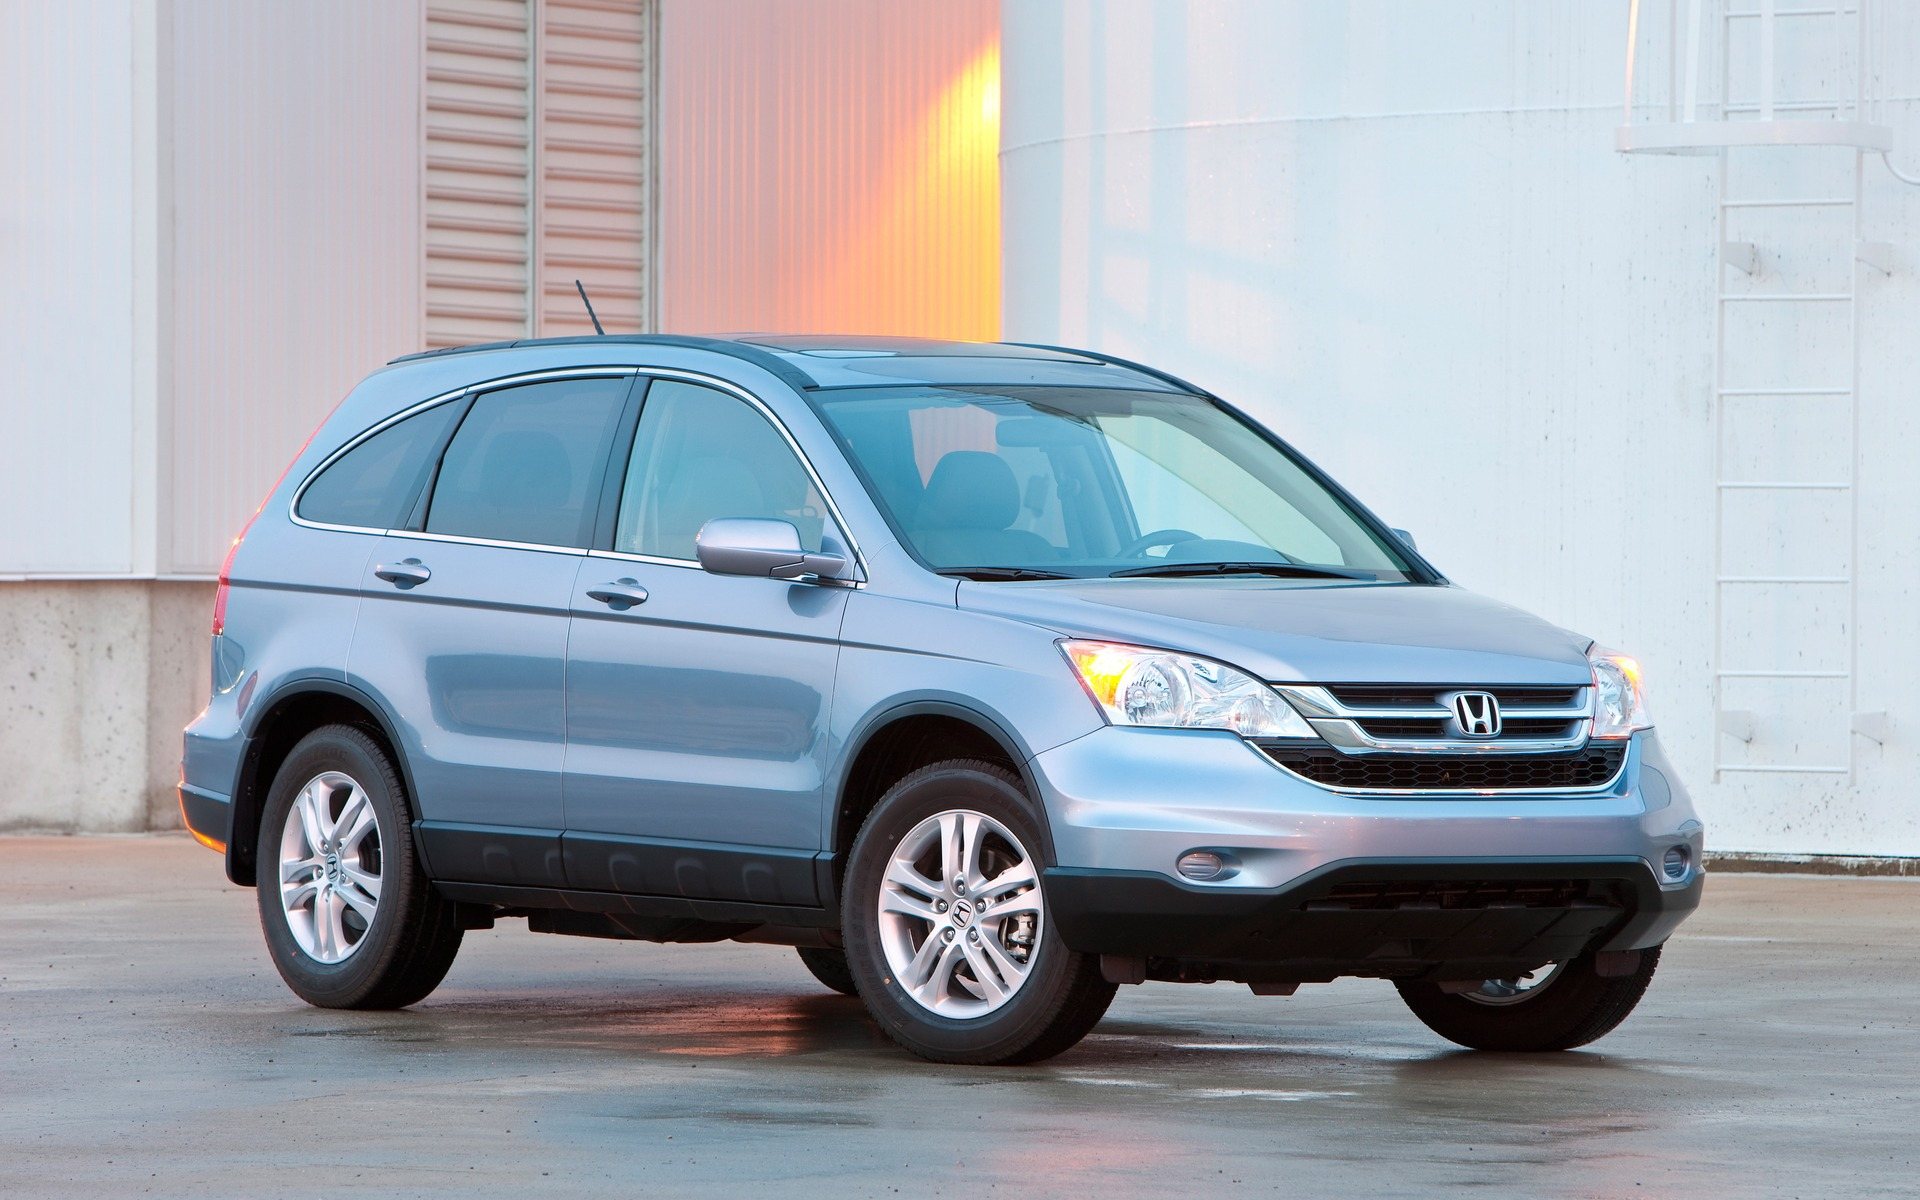 Honda Completes Takata Airbag Recall with Another 220,000